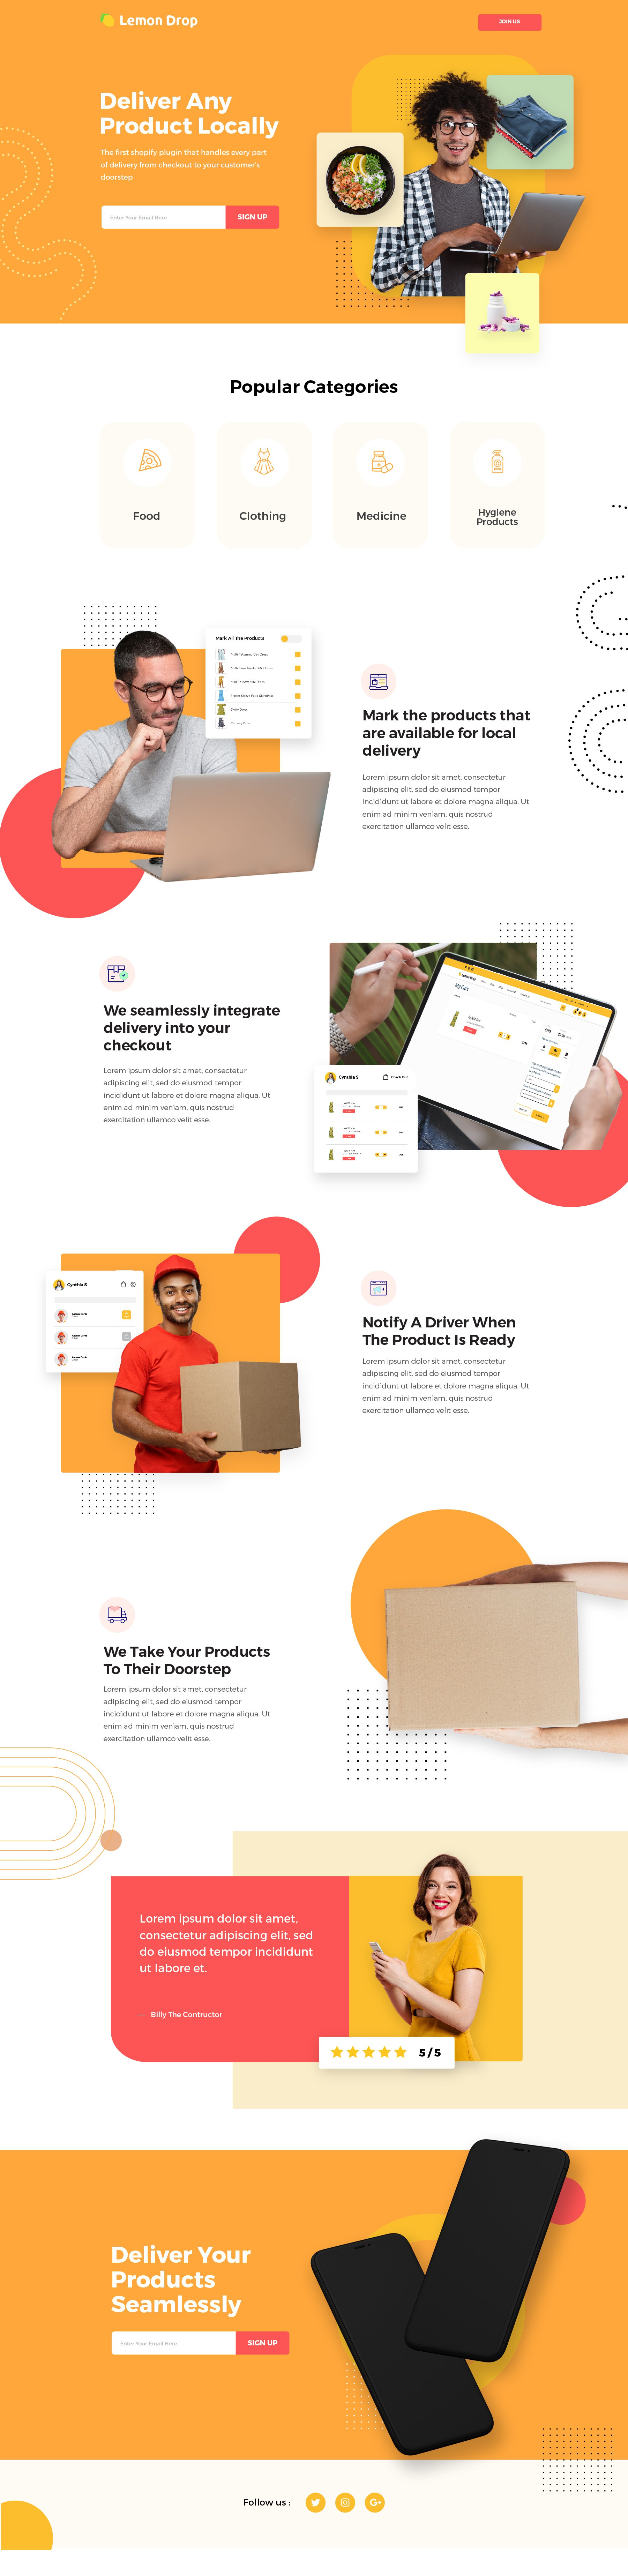 Design a landing page for a Shopify plugin